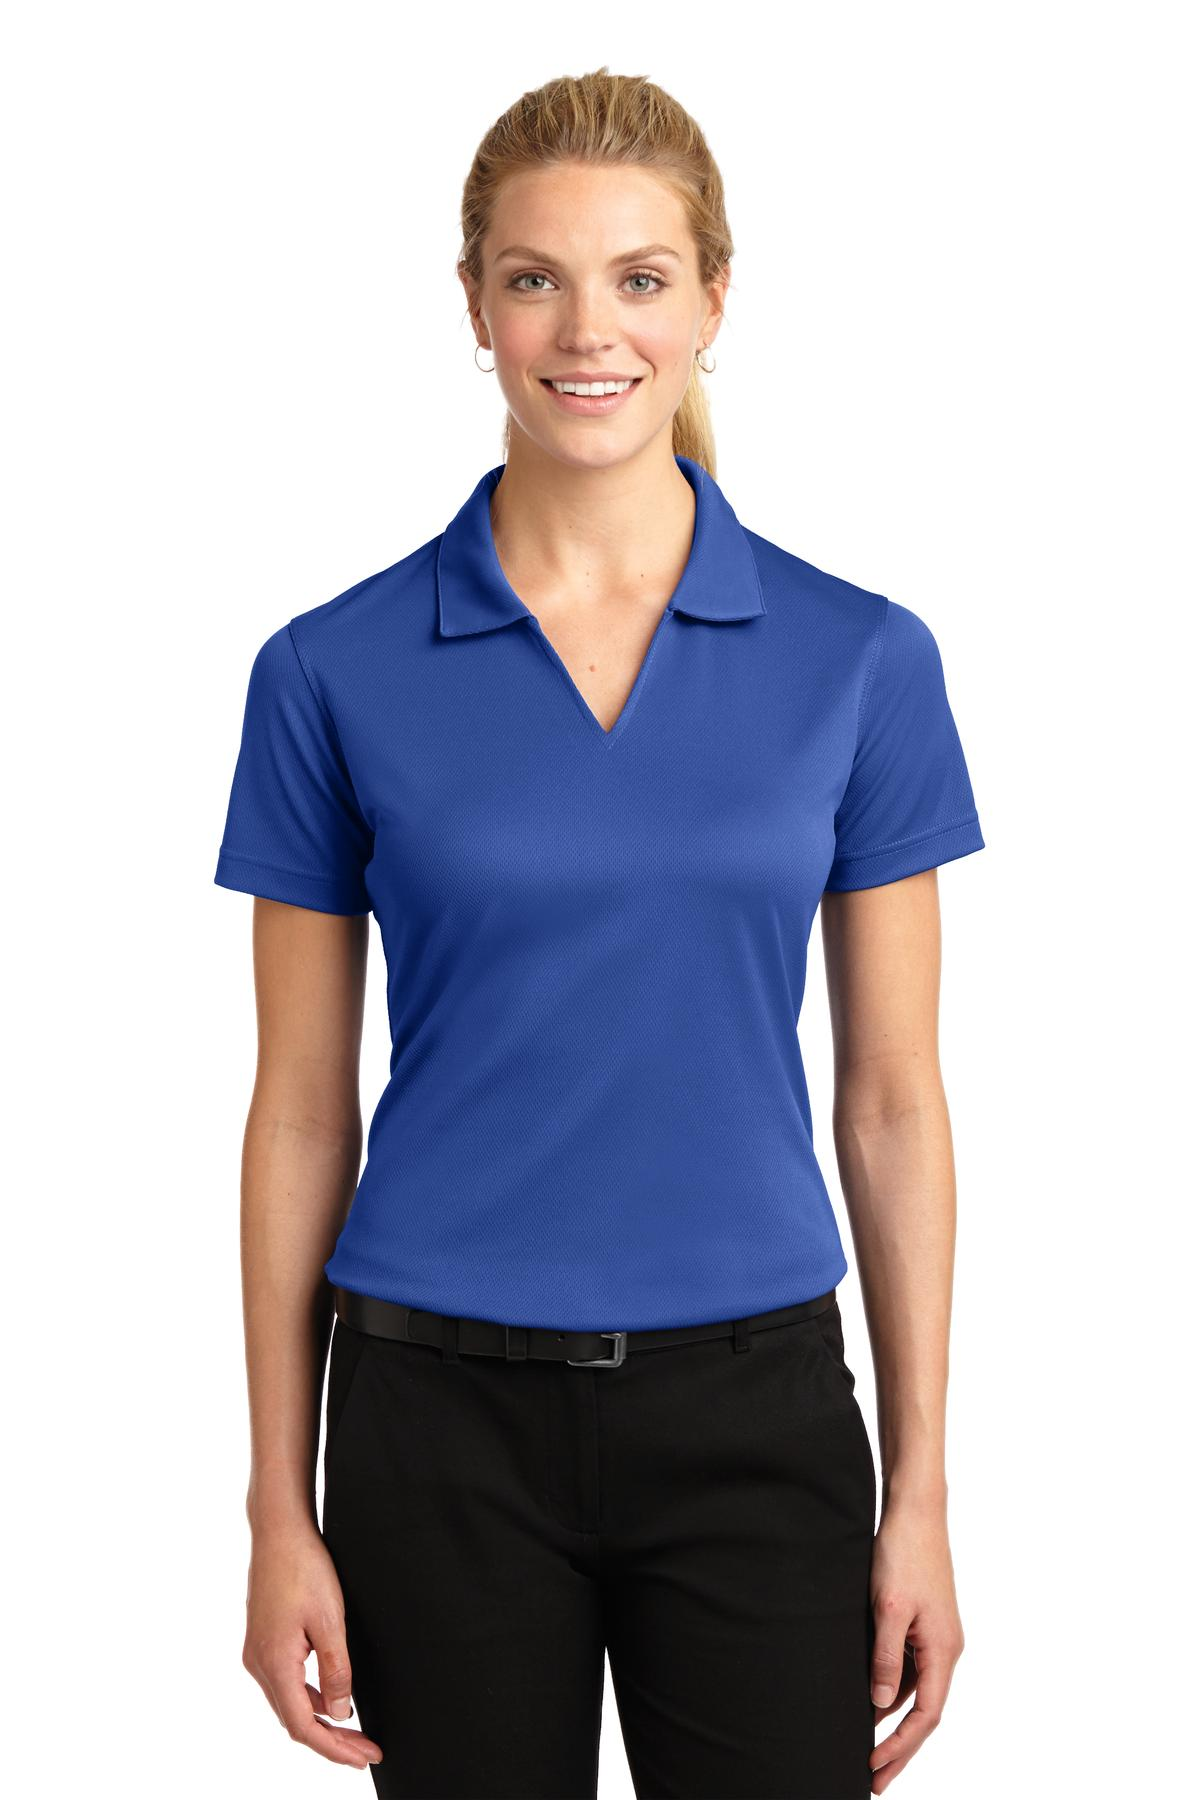 Sport-Tek ®  Ladies Dri-Mesh ®  V-Neck Polo.  L469 - Royal